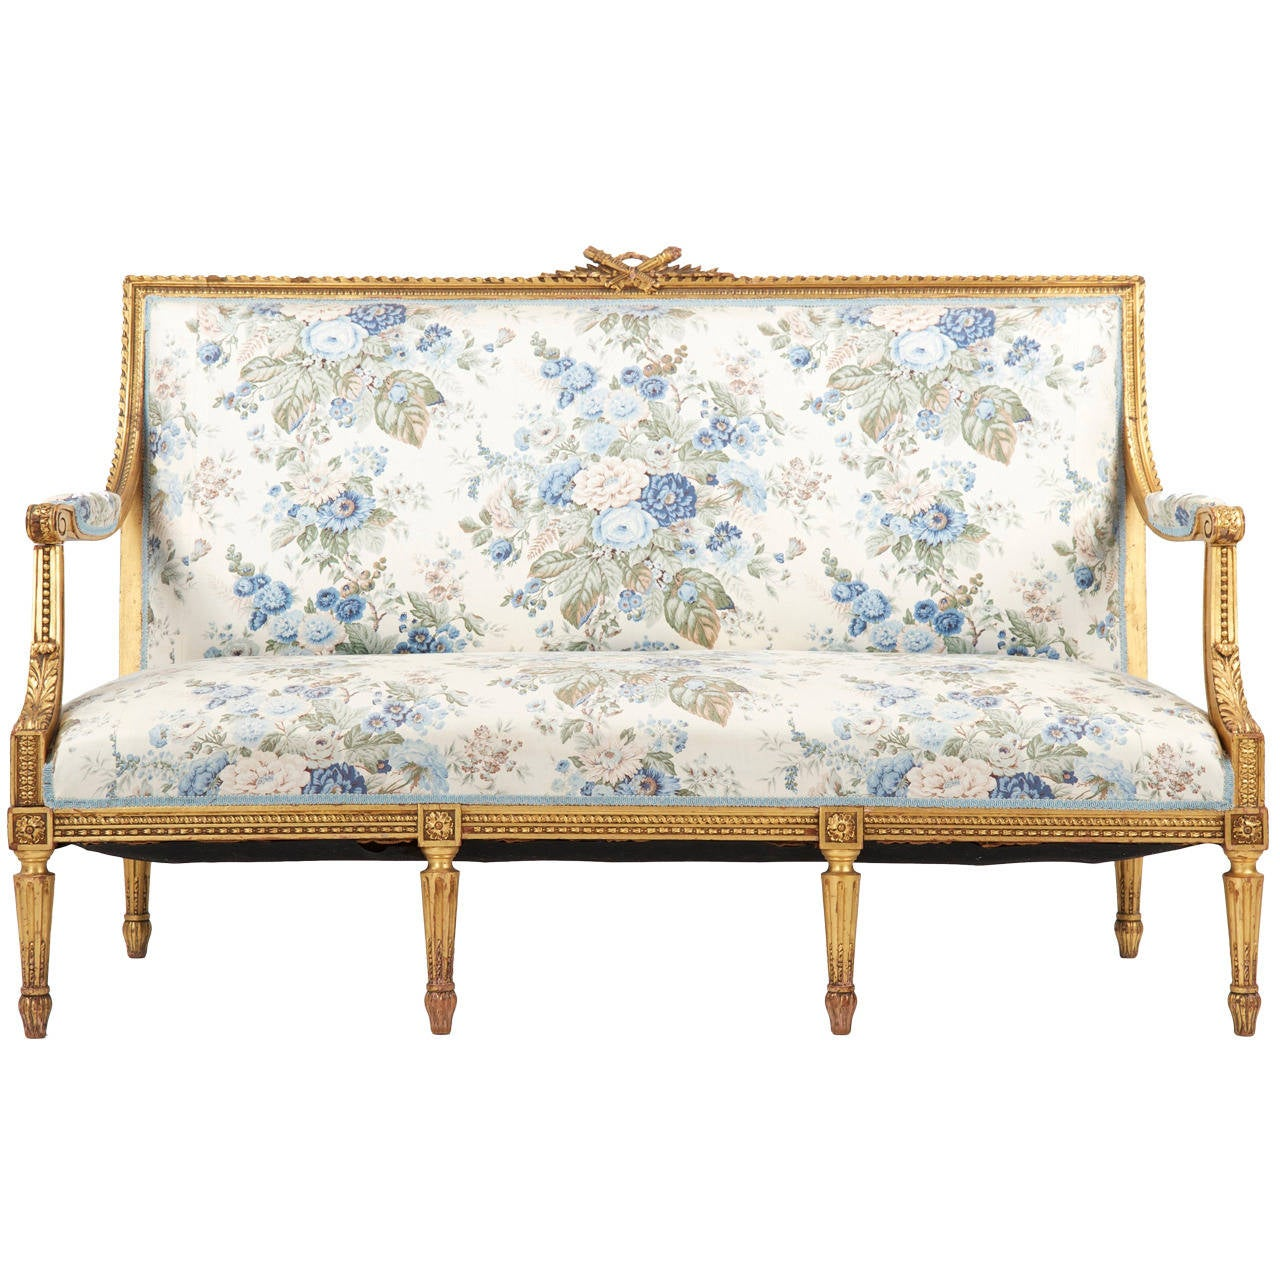 Canape Sofa French Louis Xvi Style Giltwood Antique Settee Sofa Canape C 1900